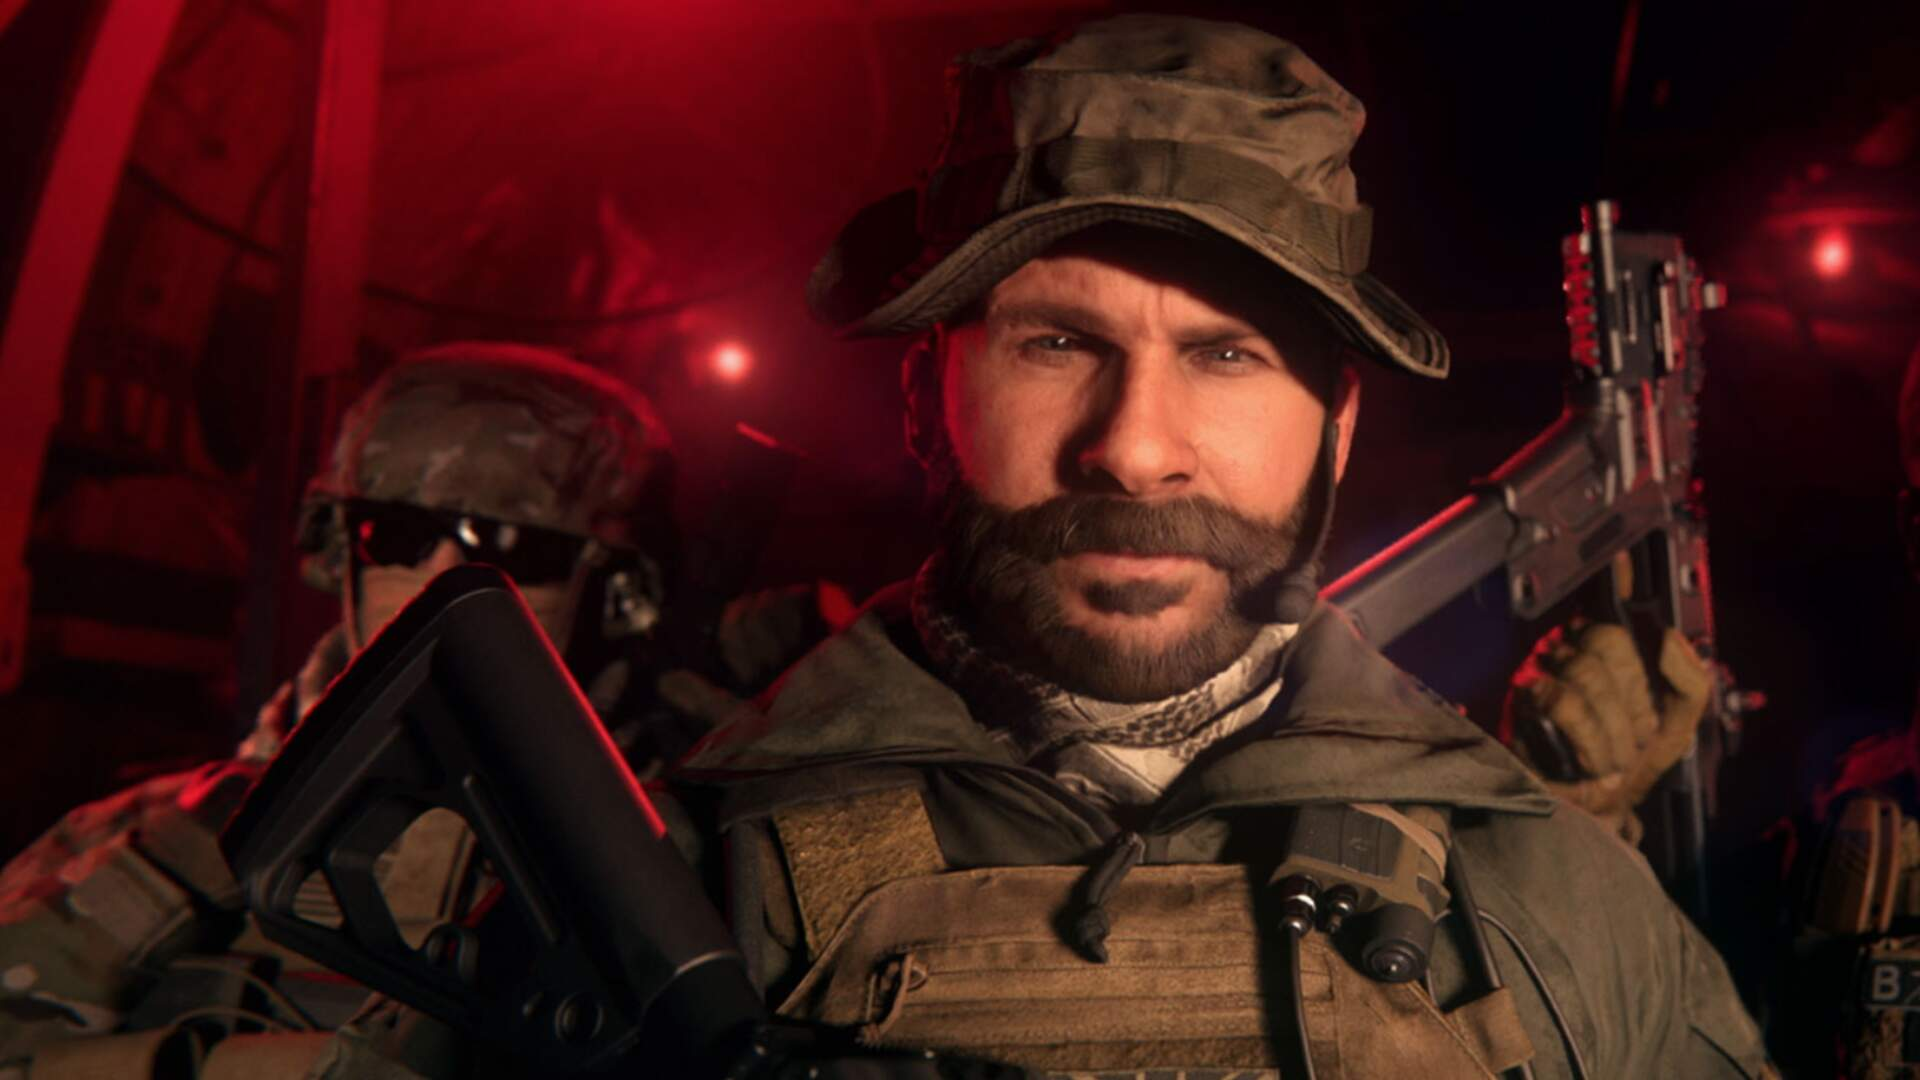 Looks Like Captain Price Is Call of Duty: Modern Warfare's Next Operator